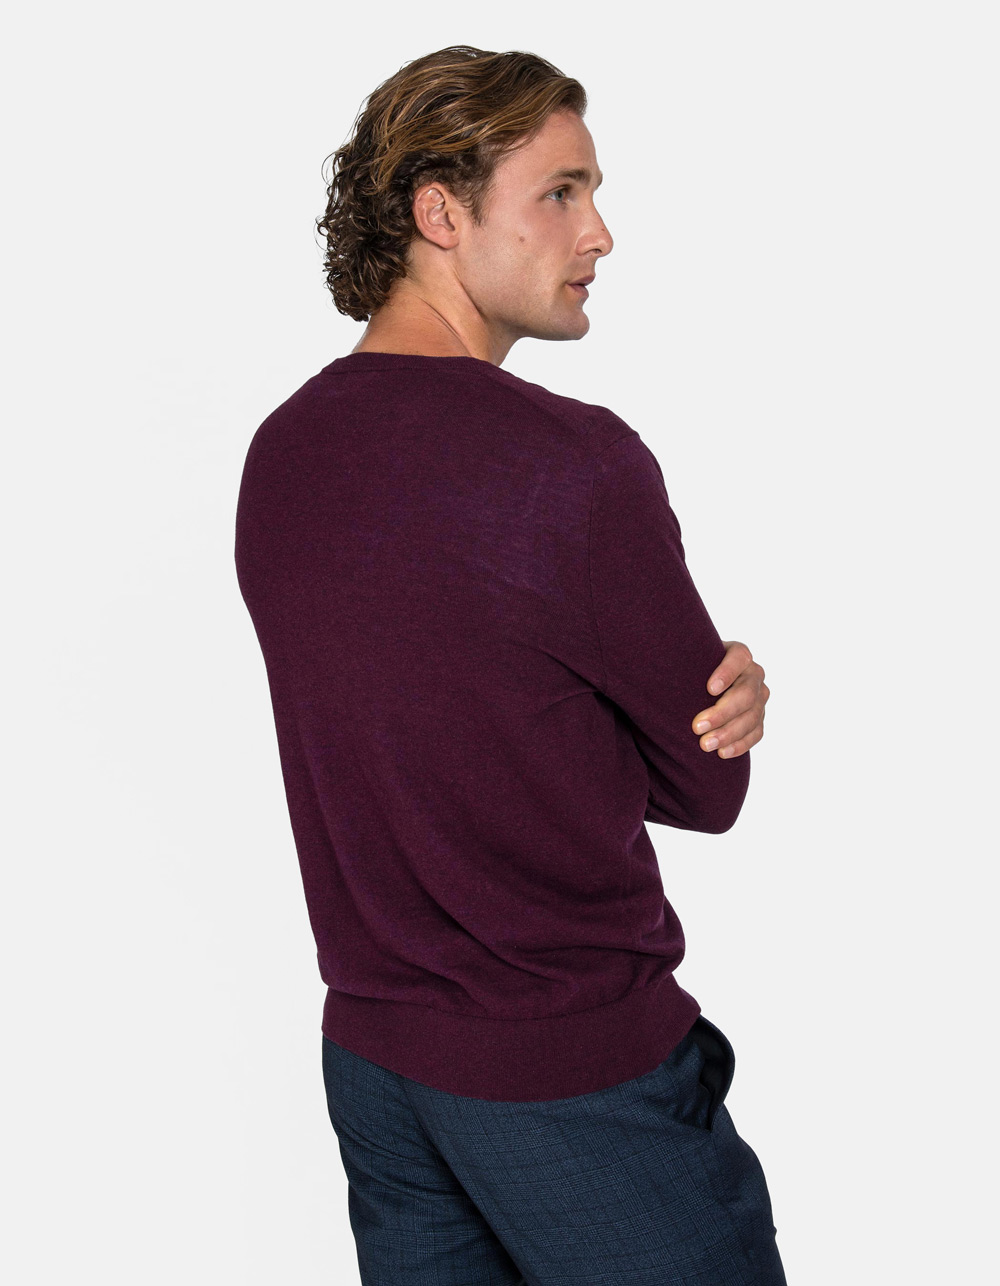 Bordo v-neck sweater - Backside